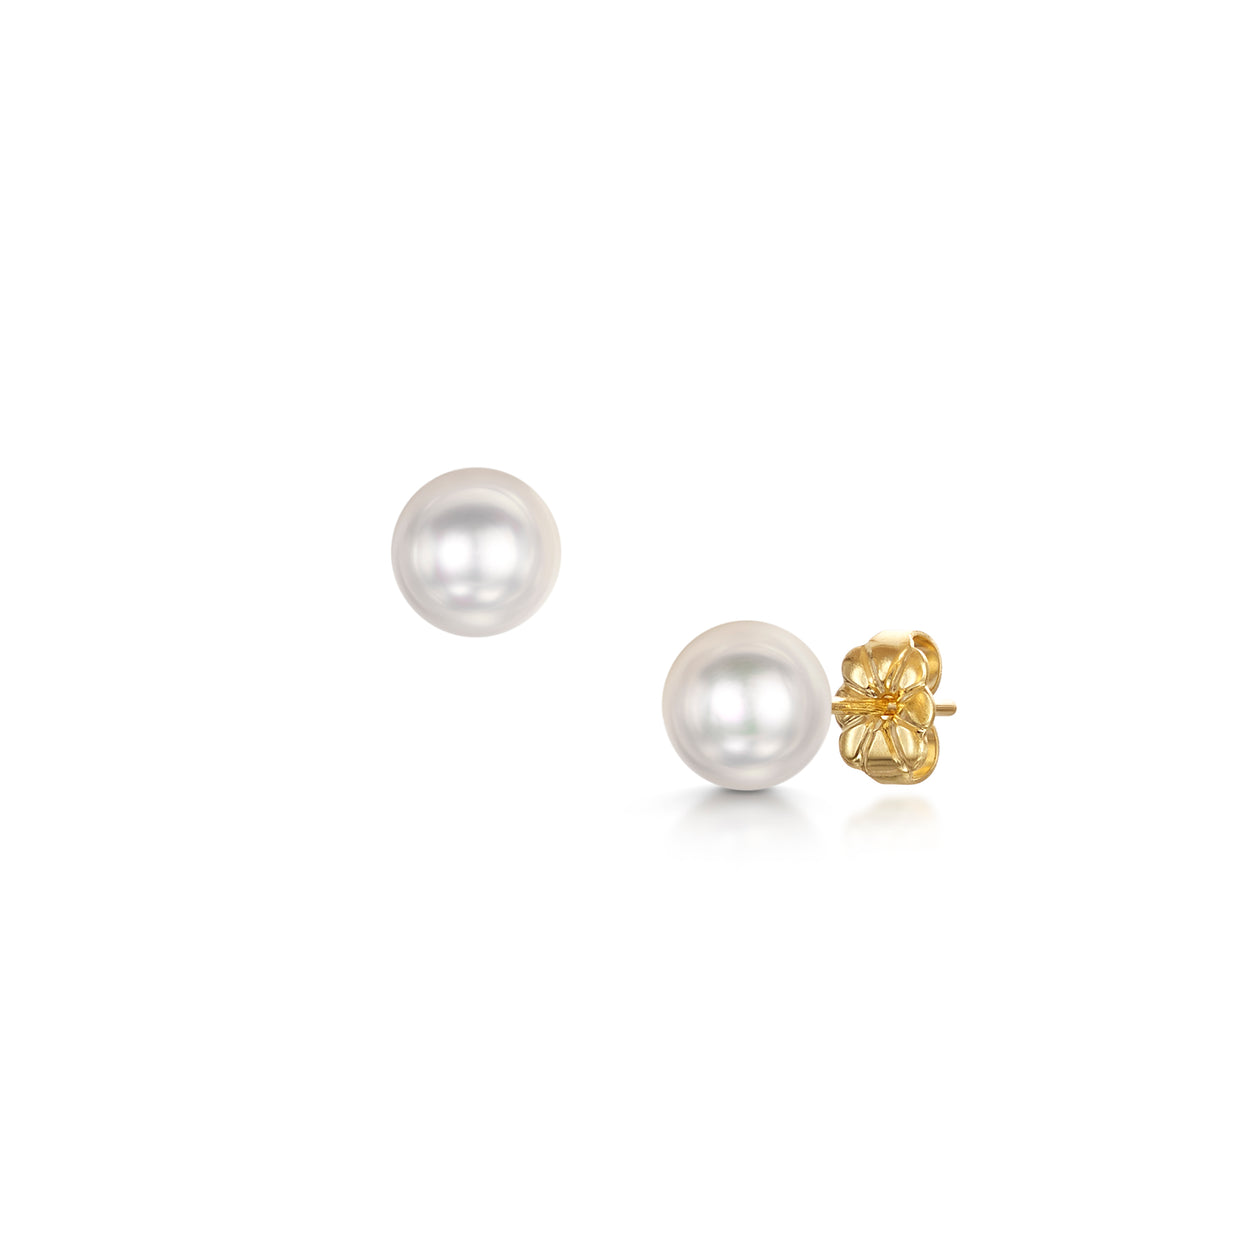 6.5x7mm Pearl Stud Earrings In 18ct Yellow Gold - Hamilton & Inches